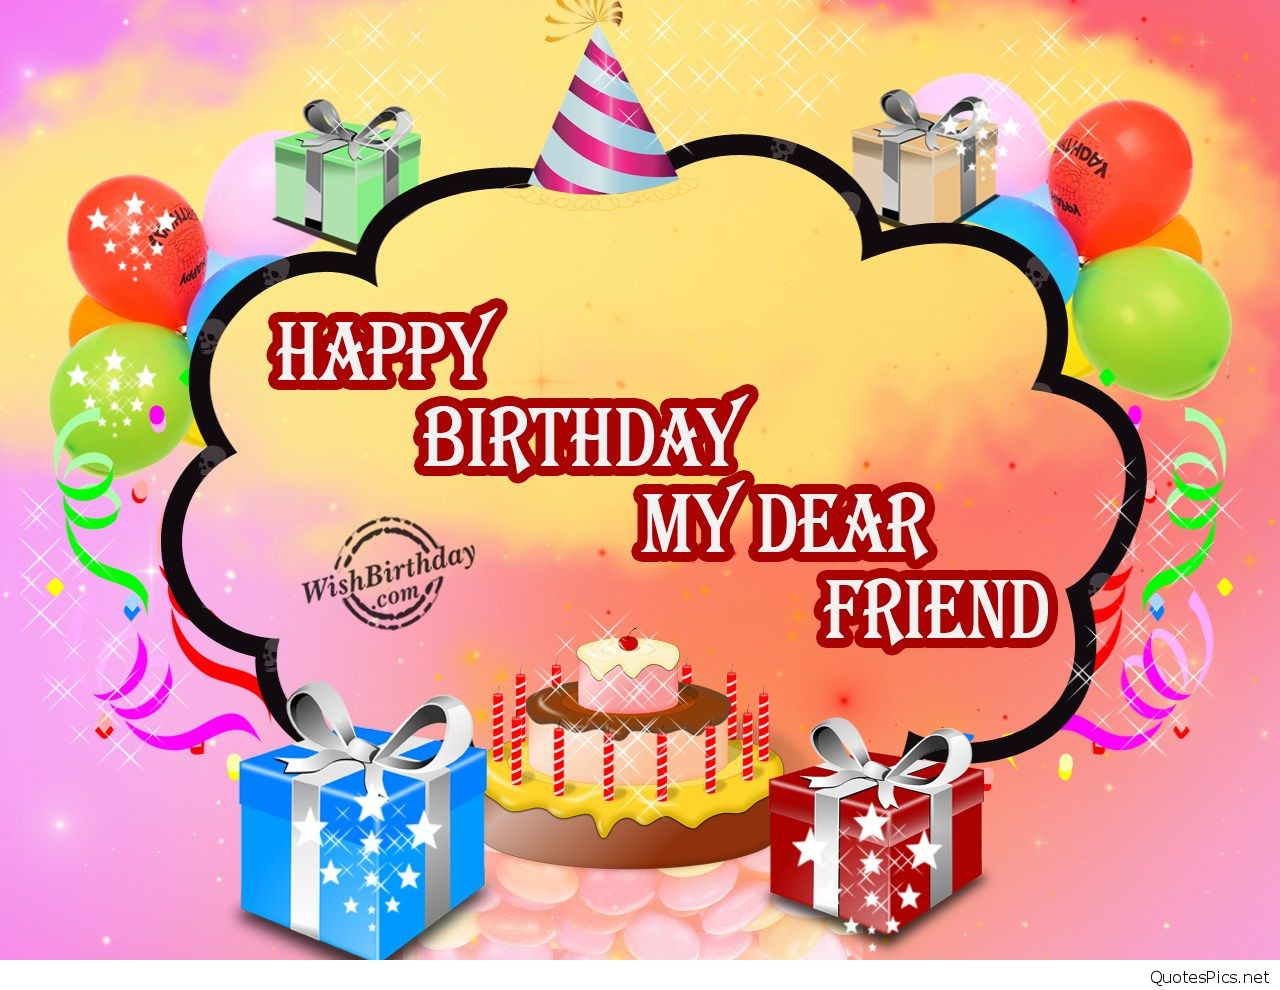 Best ideas about Happy Birthday Wishes For Best Friend . Save or Pin Best birthday wishes for friend friends with cards Now.